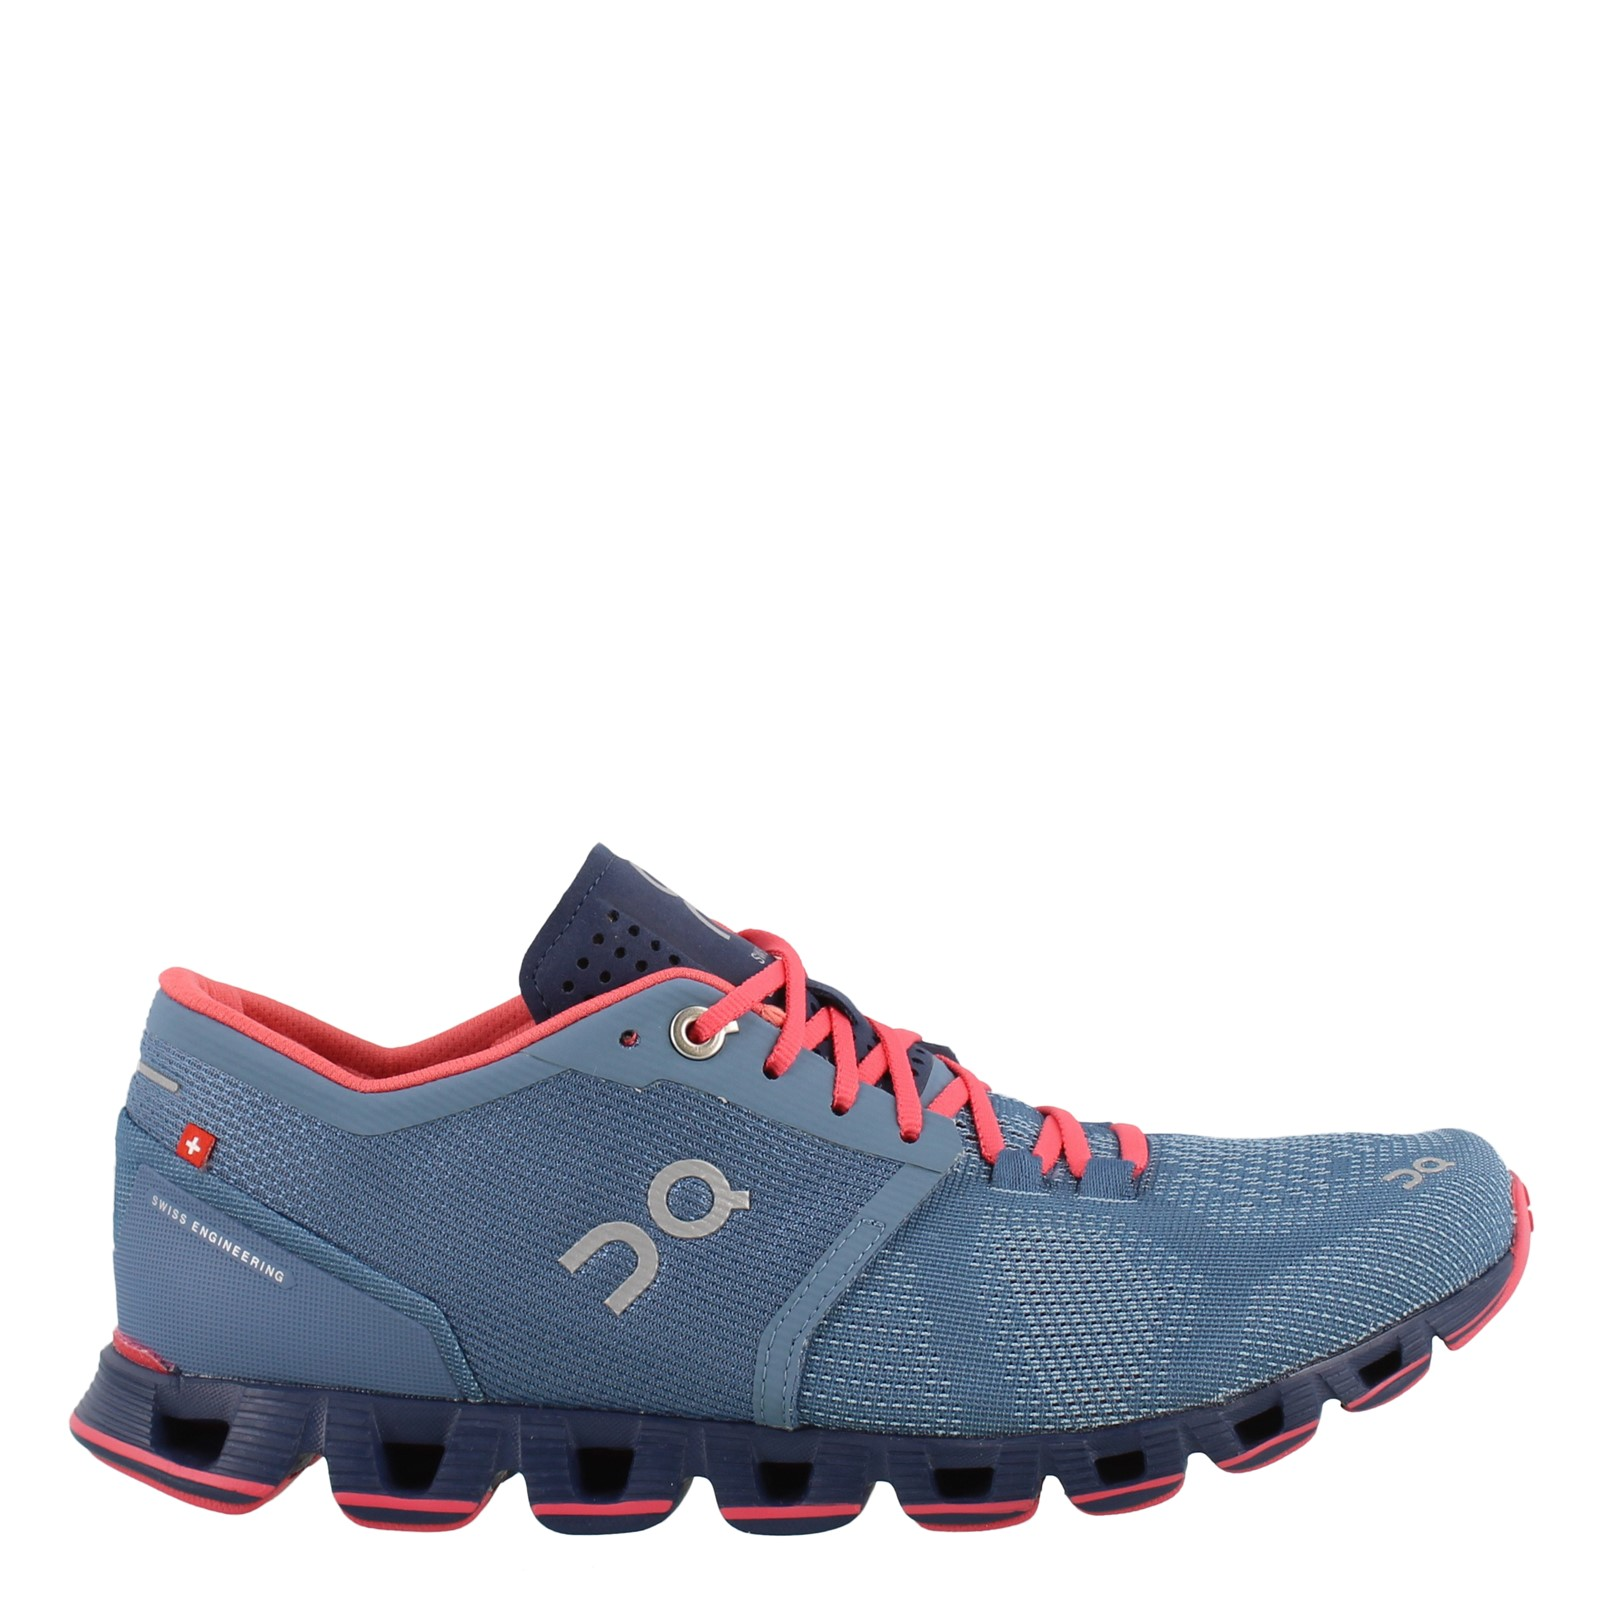 huge selection of 44774 c783e Women's On Running, Cloud X Running Shoes